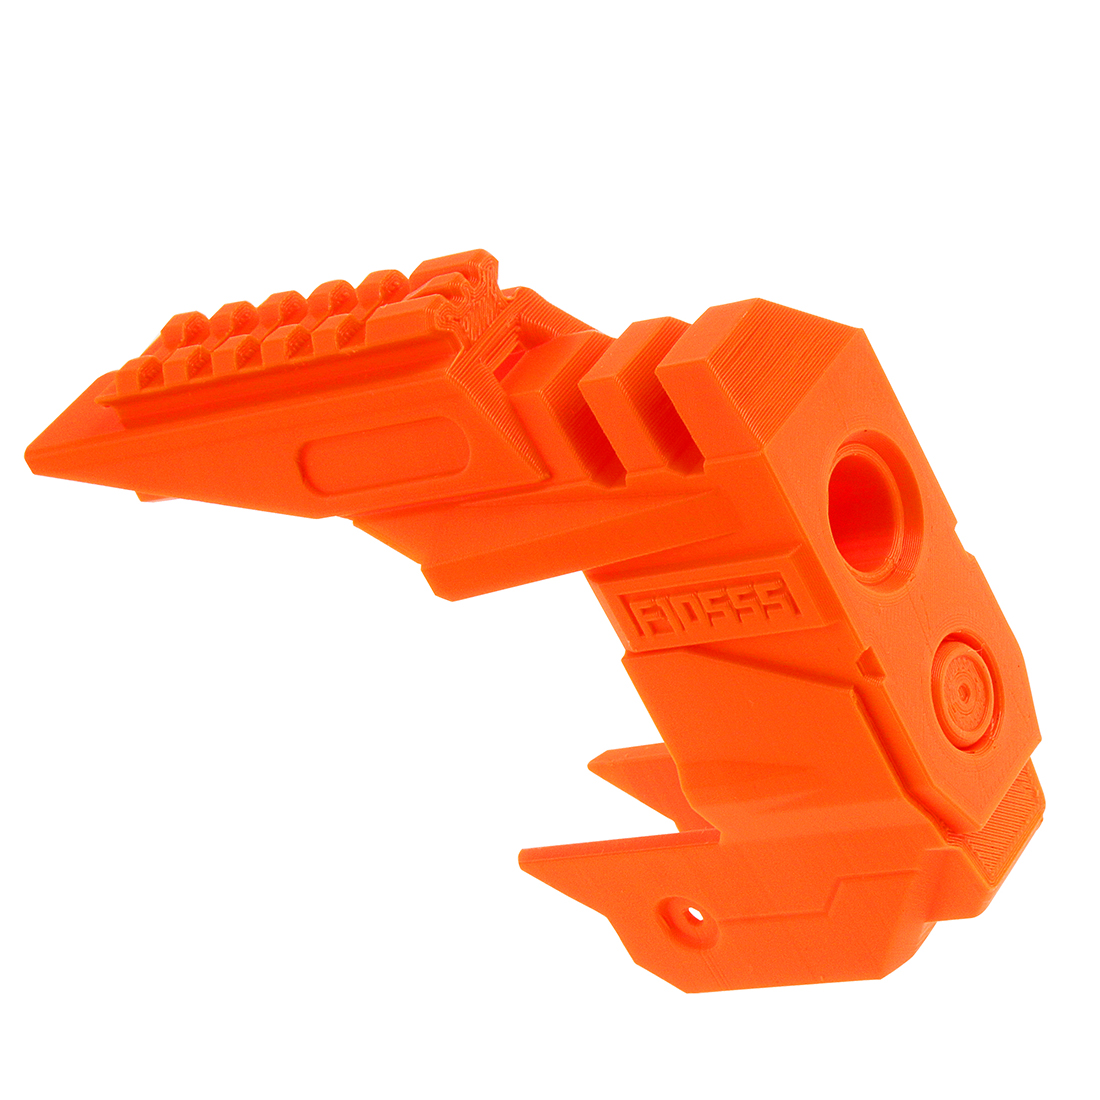 Worker F10555 No. 217 Barrel Kit For NERF Zombie Hammershot - Orange